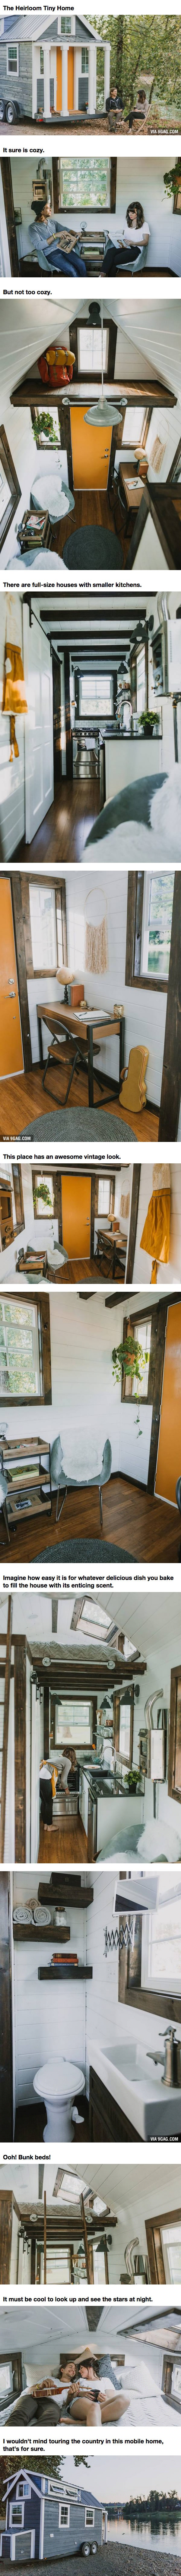 amazing pics of tiny mobile home